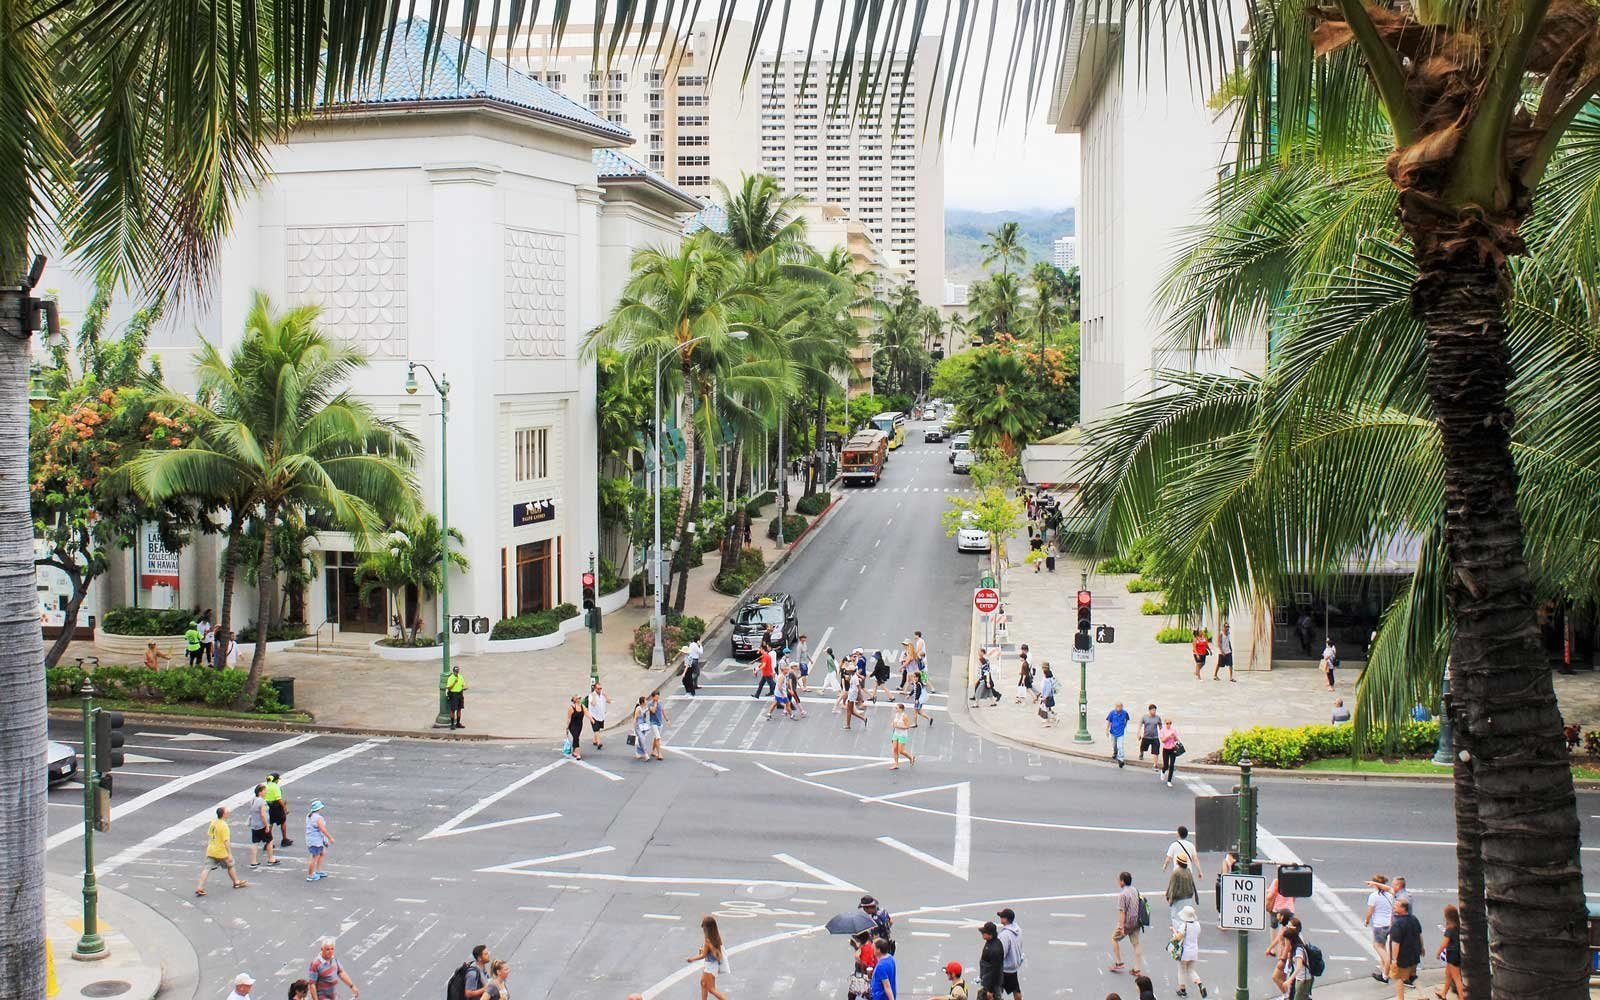 Downtown Waikiki, bustling with locals and tourists